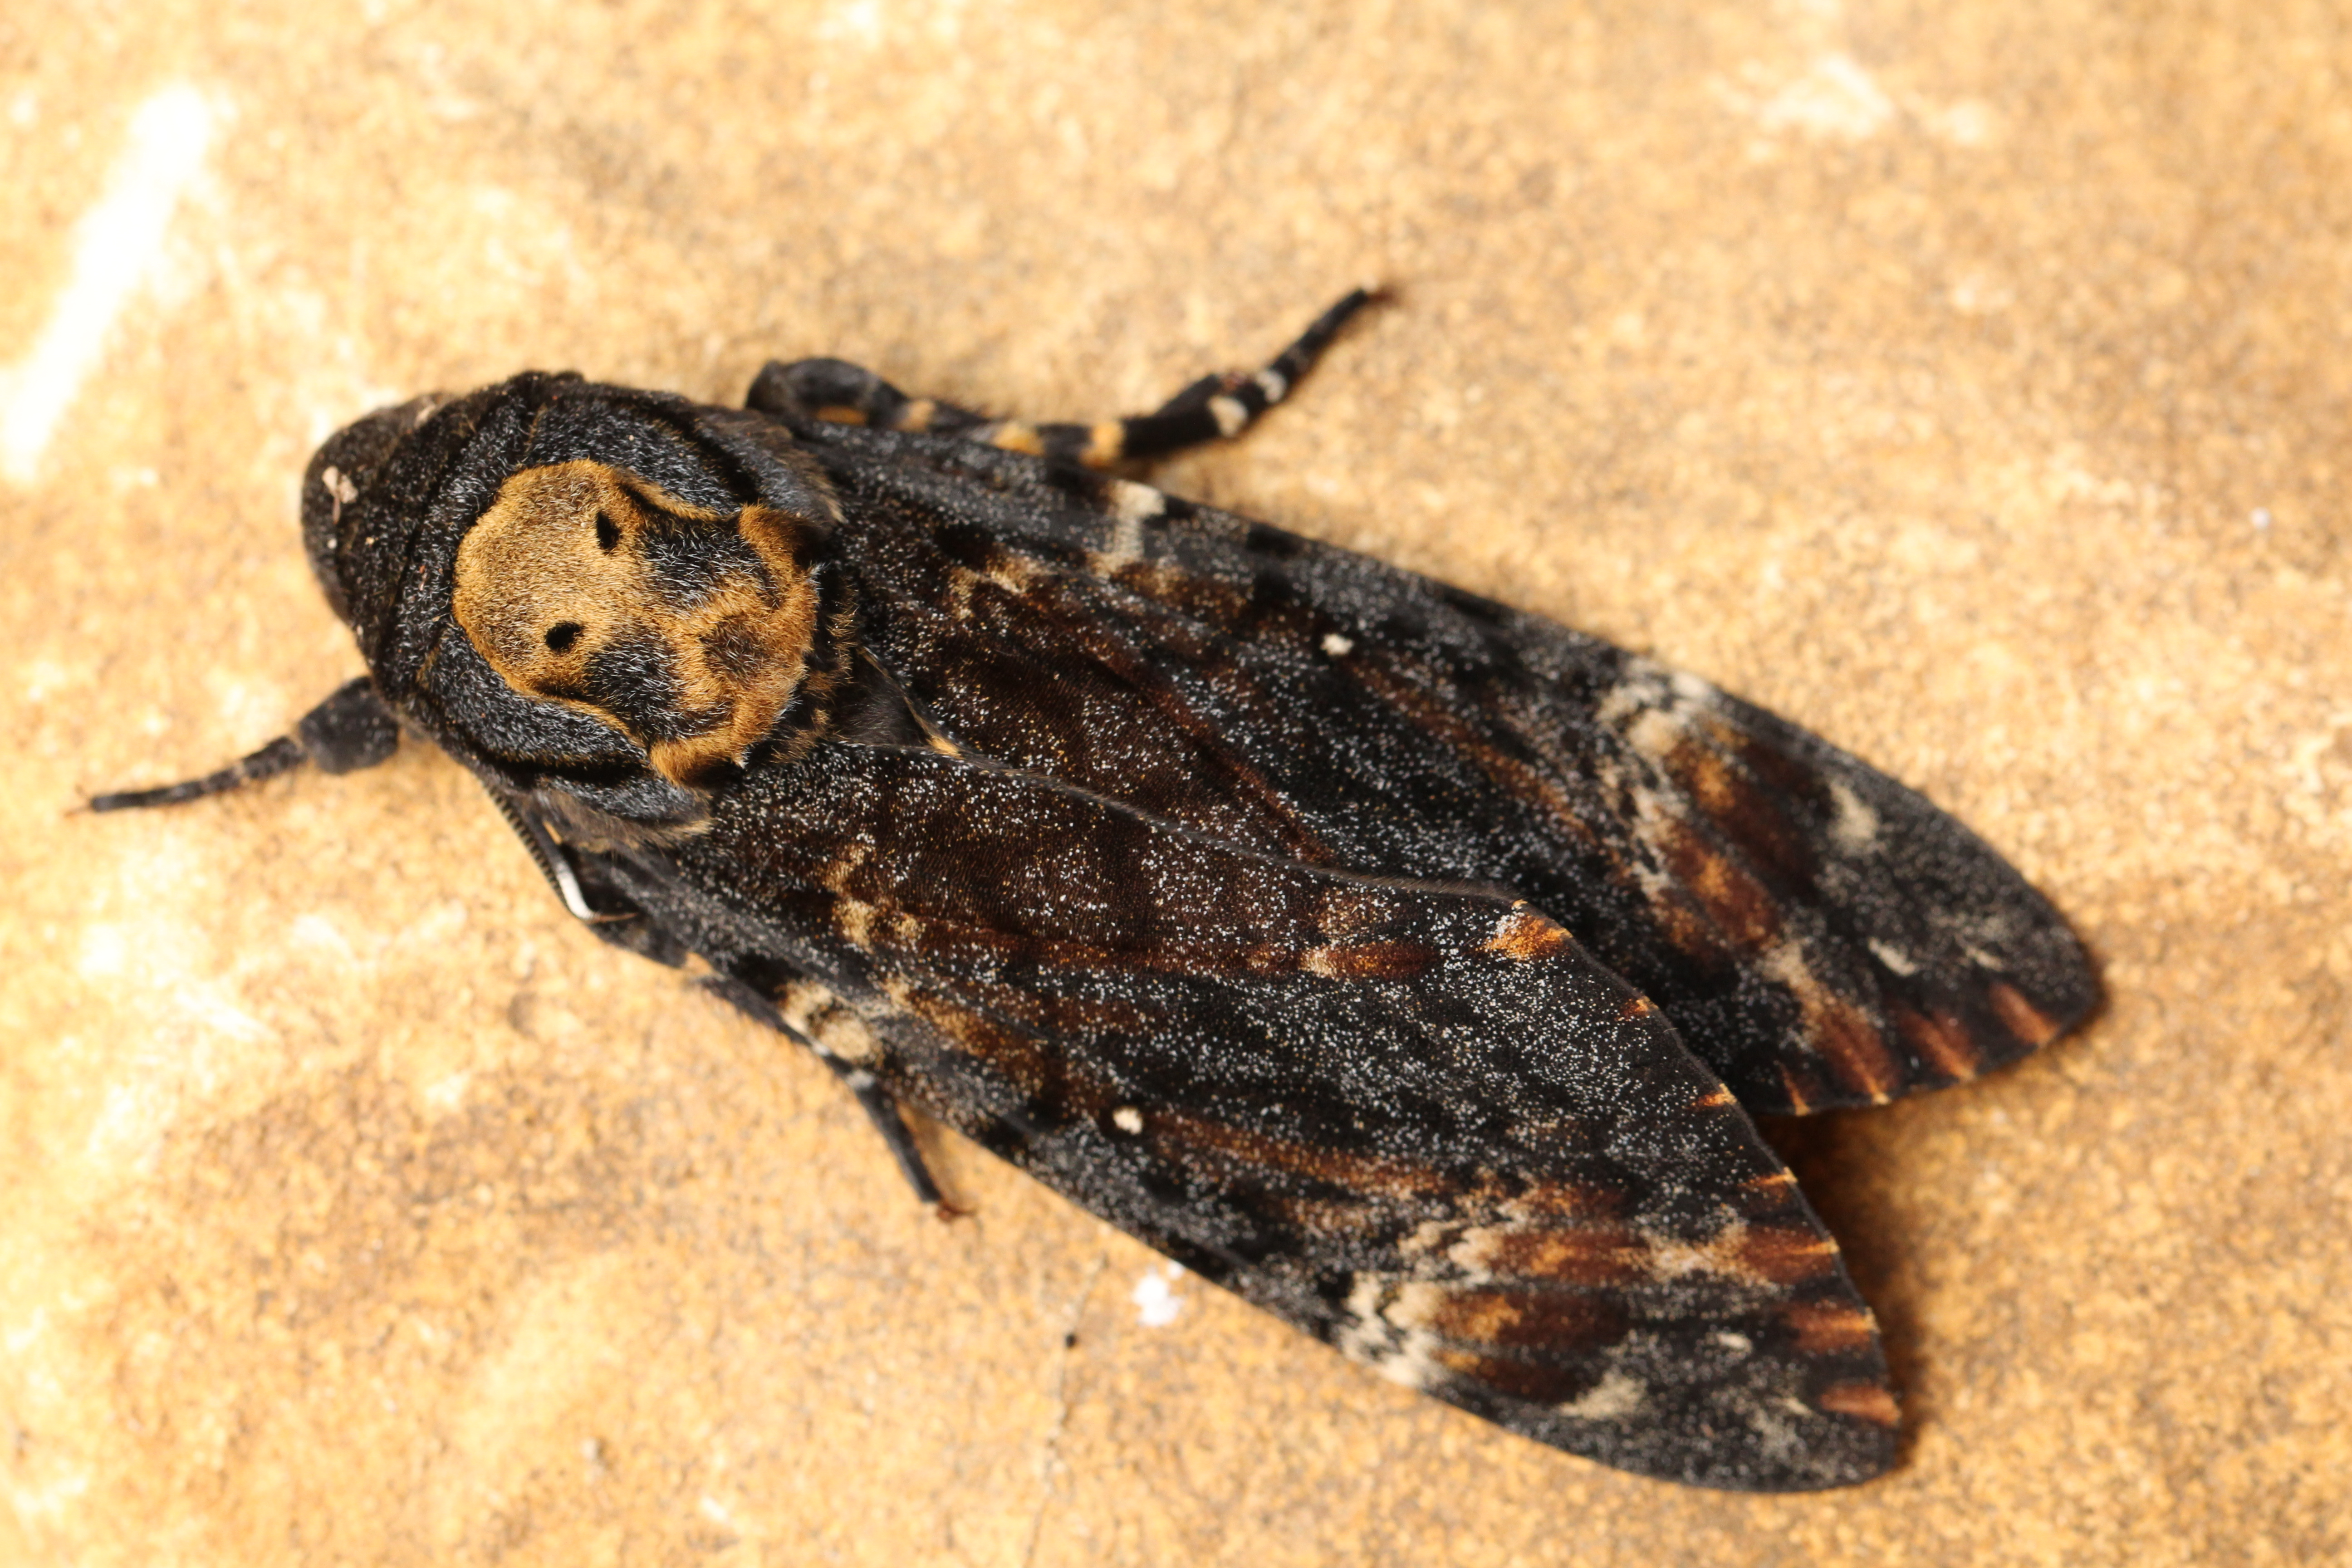 An image of a Death's-Head Hawk-Moth, made famous by The Silence of the Lambs.